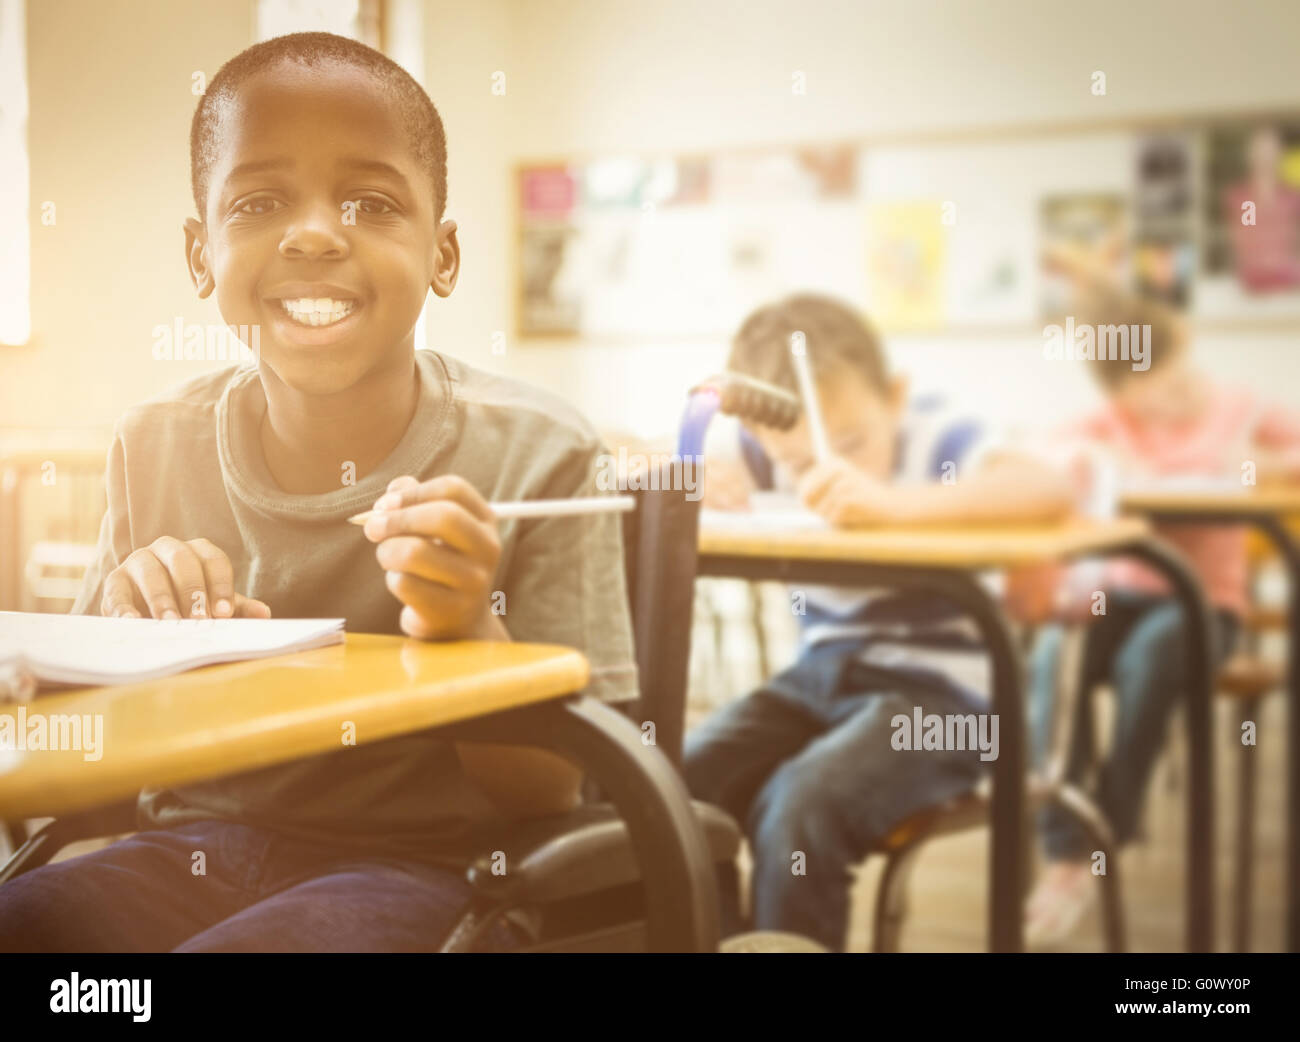 Disabled pupil smiling at camera in classroom - Stock Image